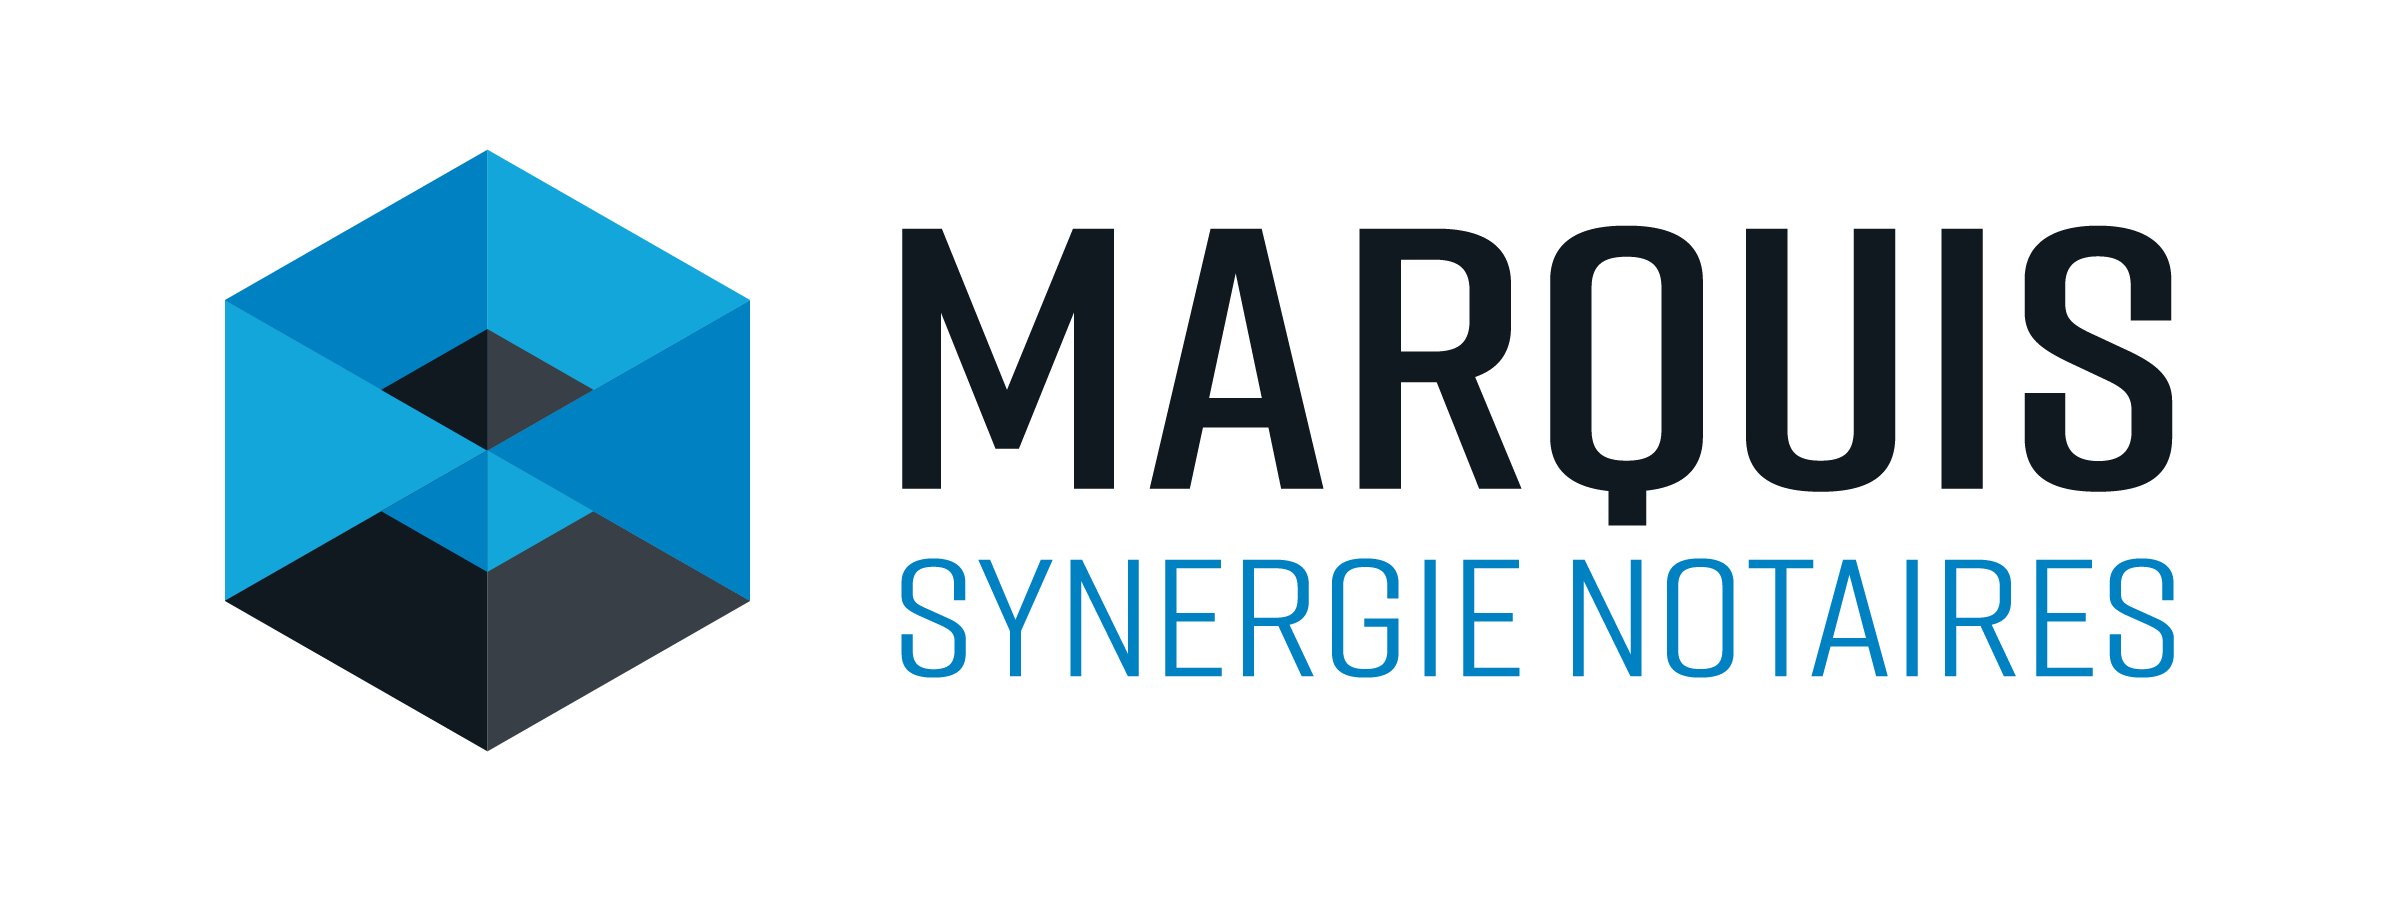 Marquis Synergie Notaires - Logo